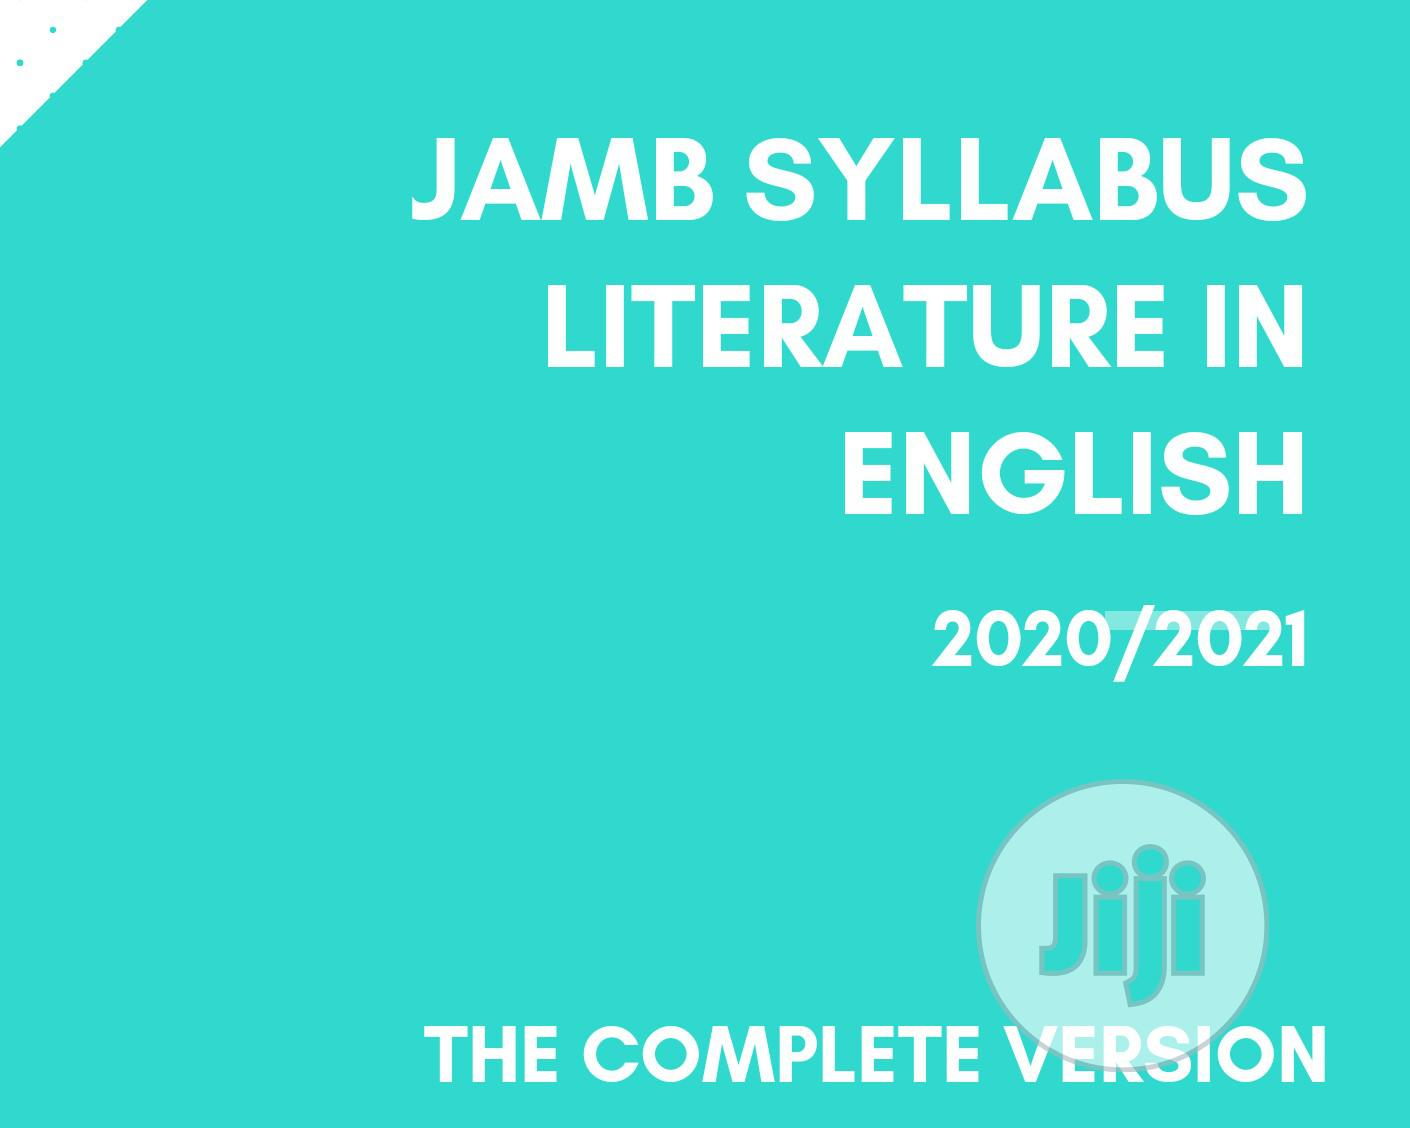 Archive: Jamb Syllabus Literature In English: The Complete Version